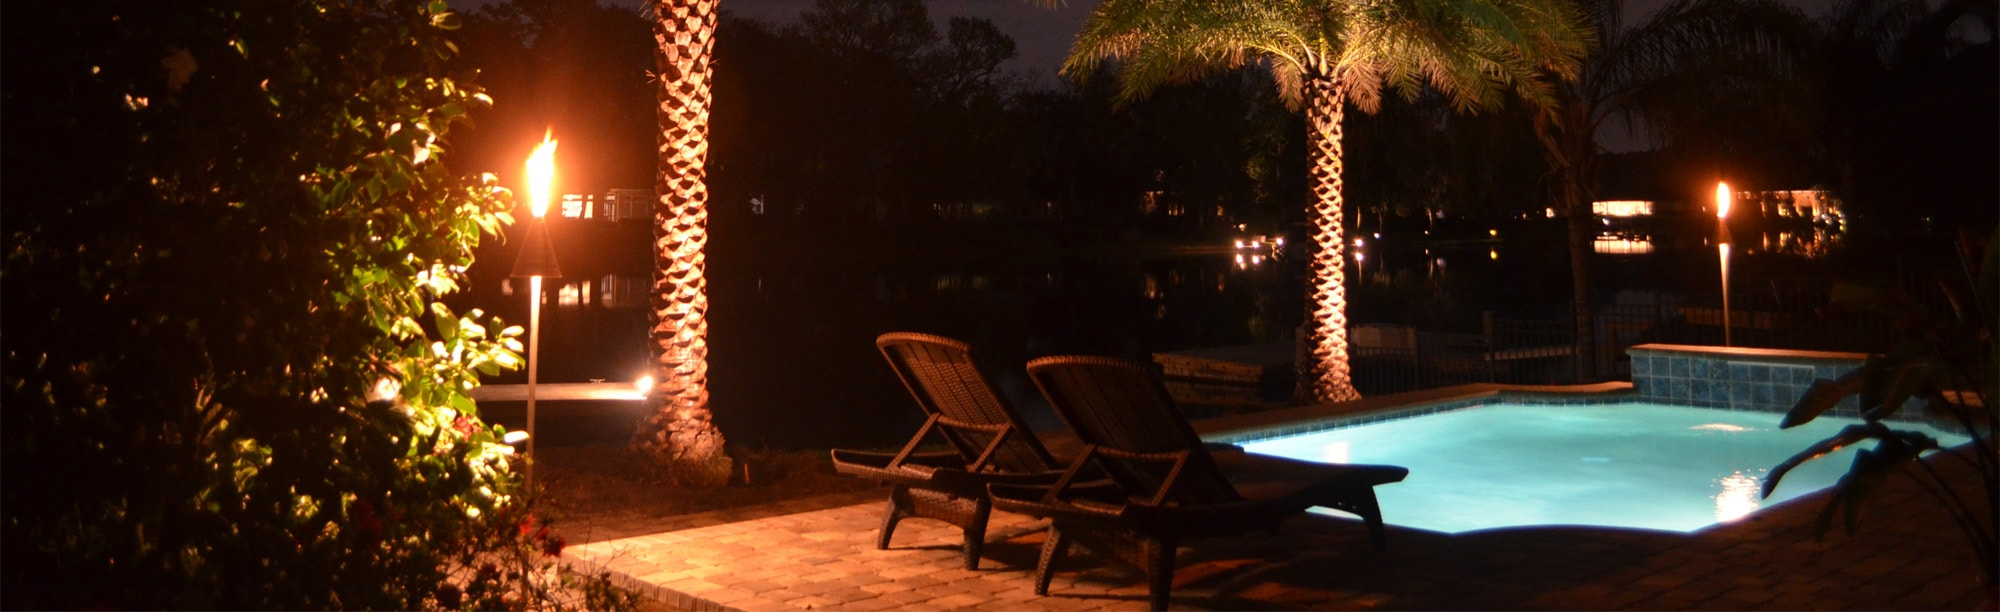 Pool area with lighting